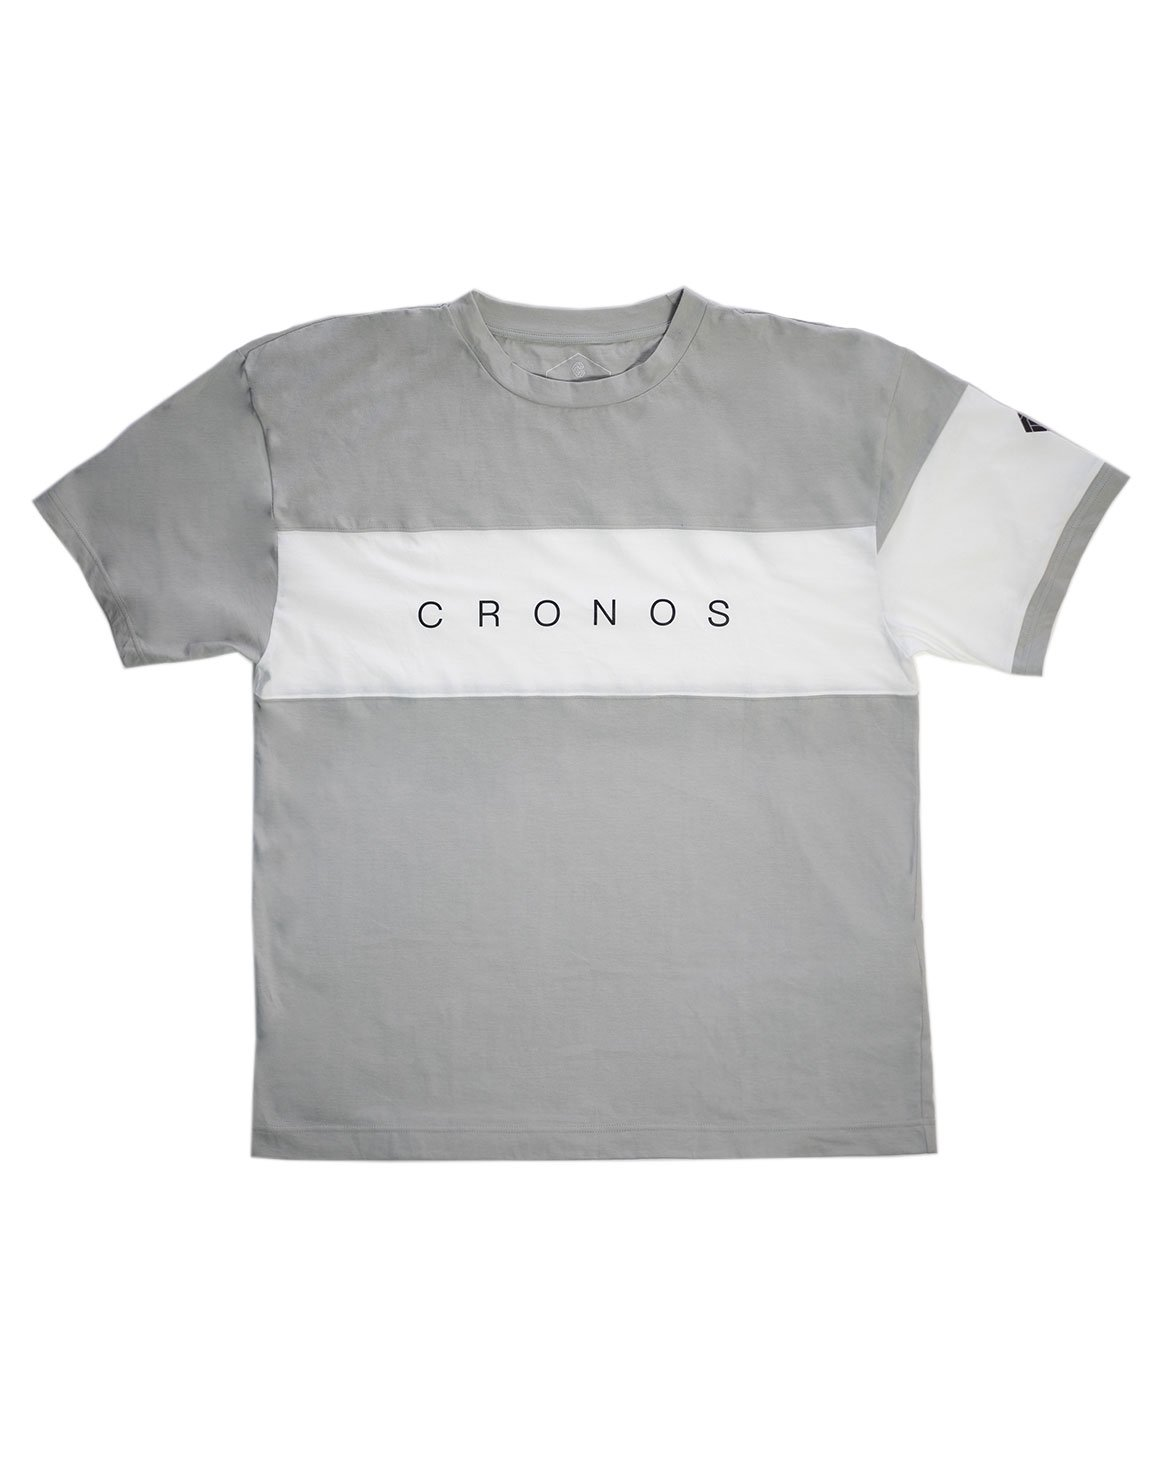 <img class='new_mark_img1' src='https://img.shop-pro.jp/img/new/icons1.gif' style='border:none;display:inline;margin:0px;padding:0px;width:auto;' />CRONOS FRONT THICK LINE  T-SHIRT GRAY